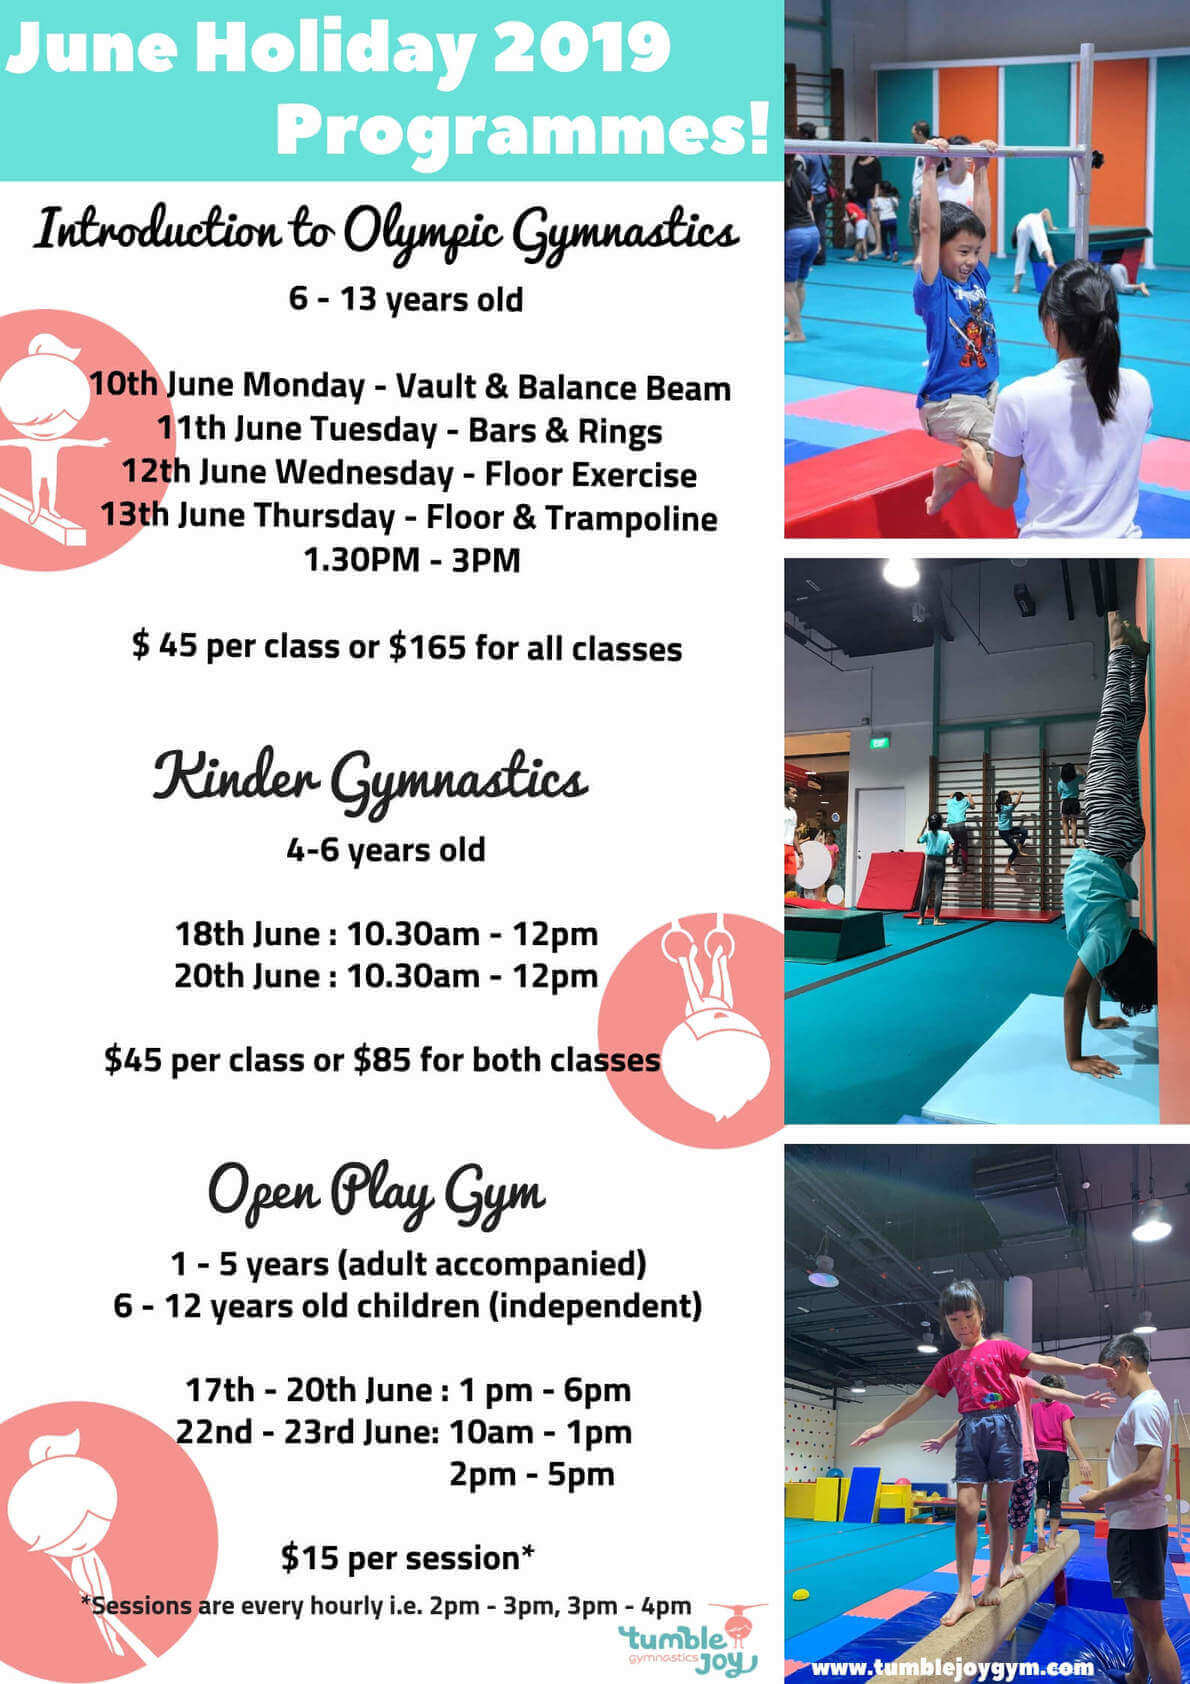 Tumble Joy Holiday Program!